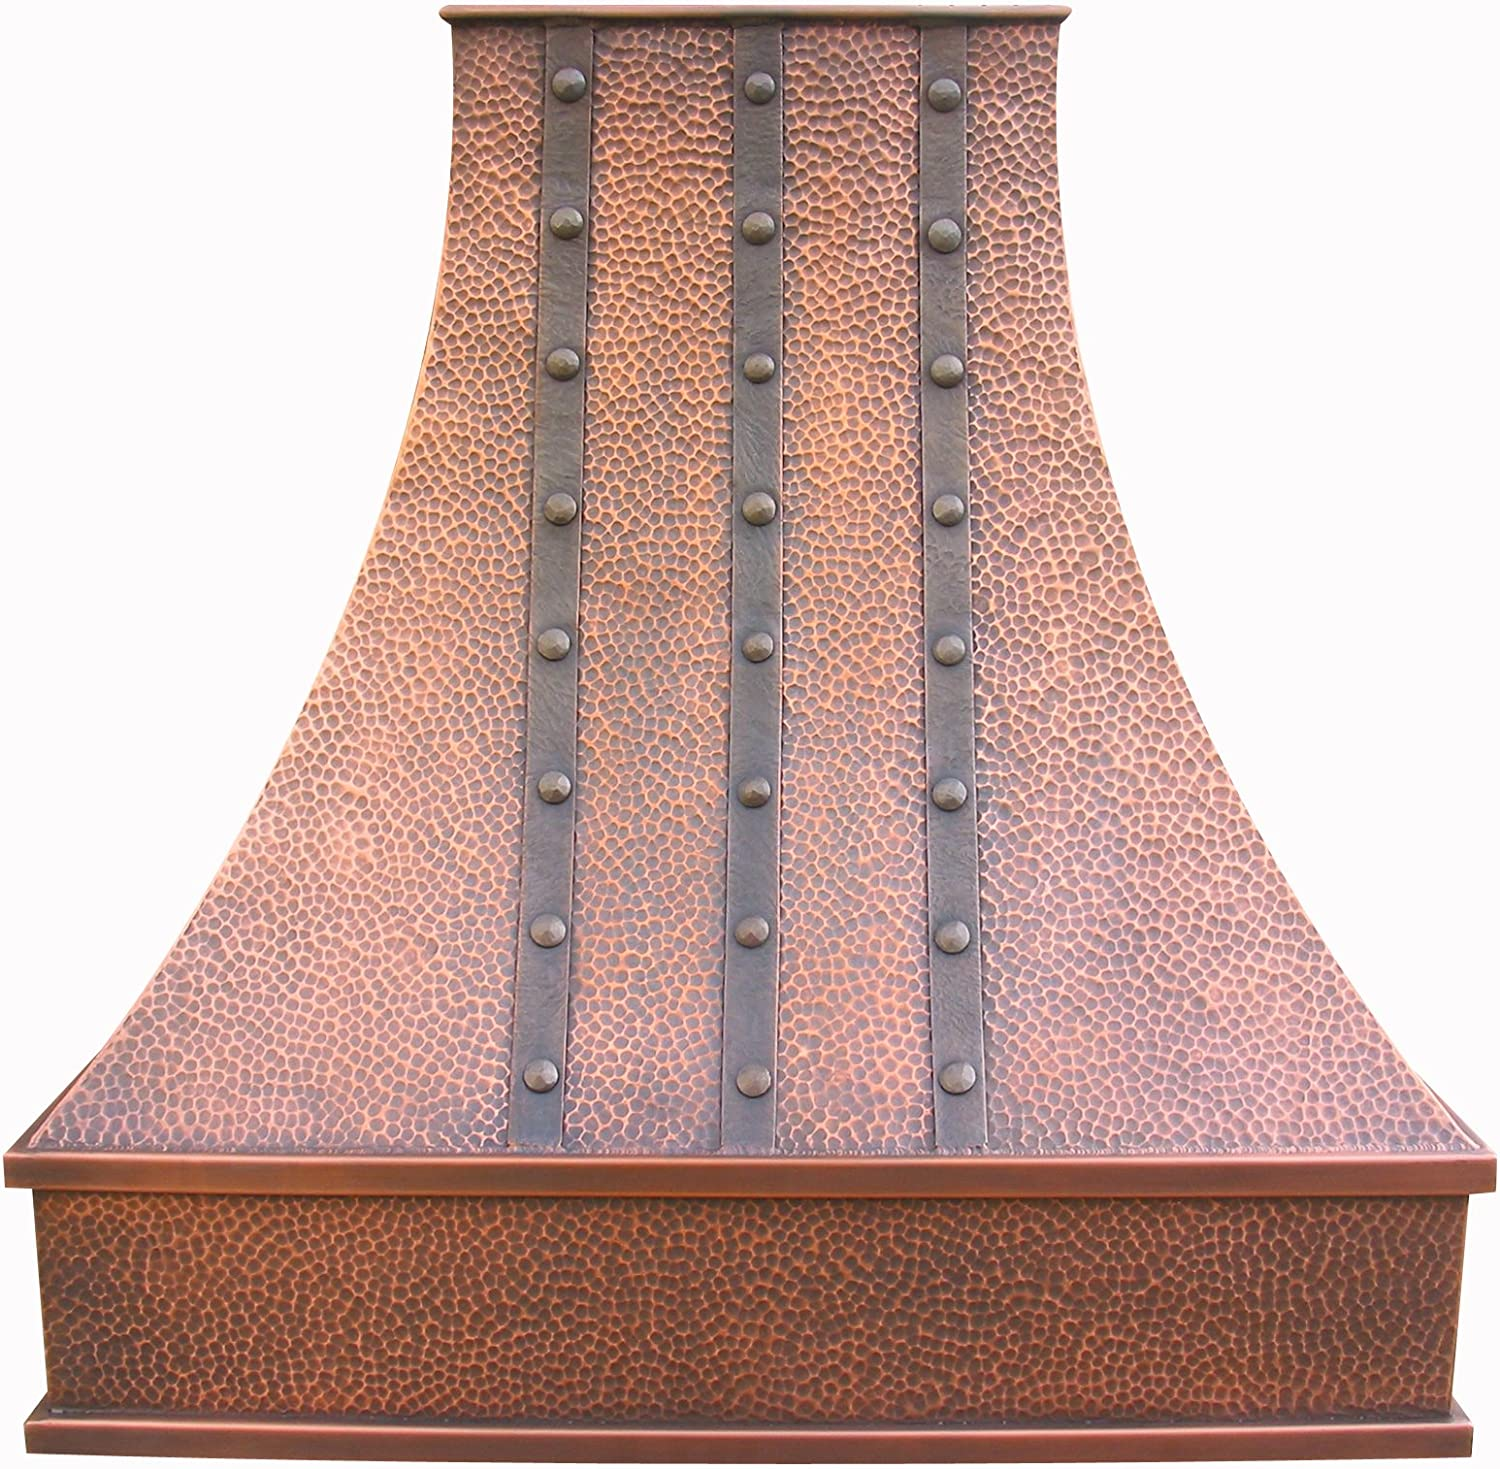 Copper Tailor At the price of surprise Range Hood Wall Award Mount 4 Exhaust Fan S Speed